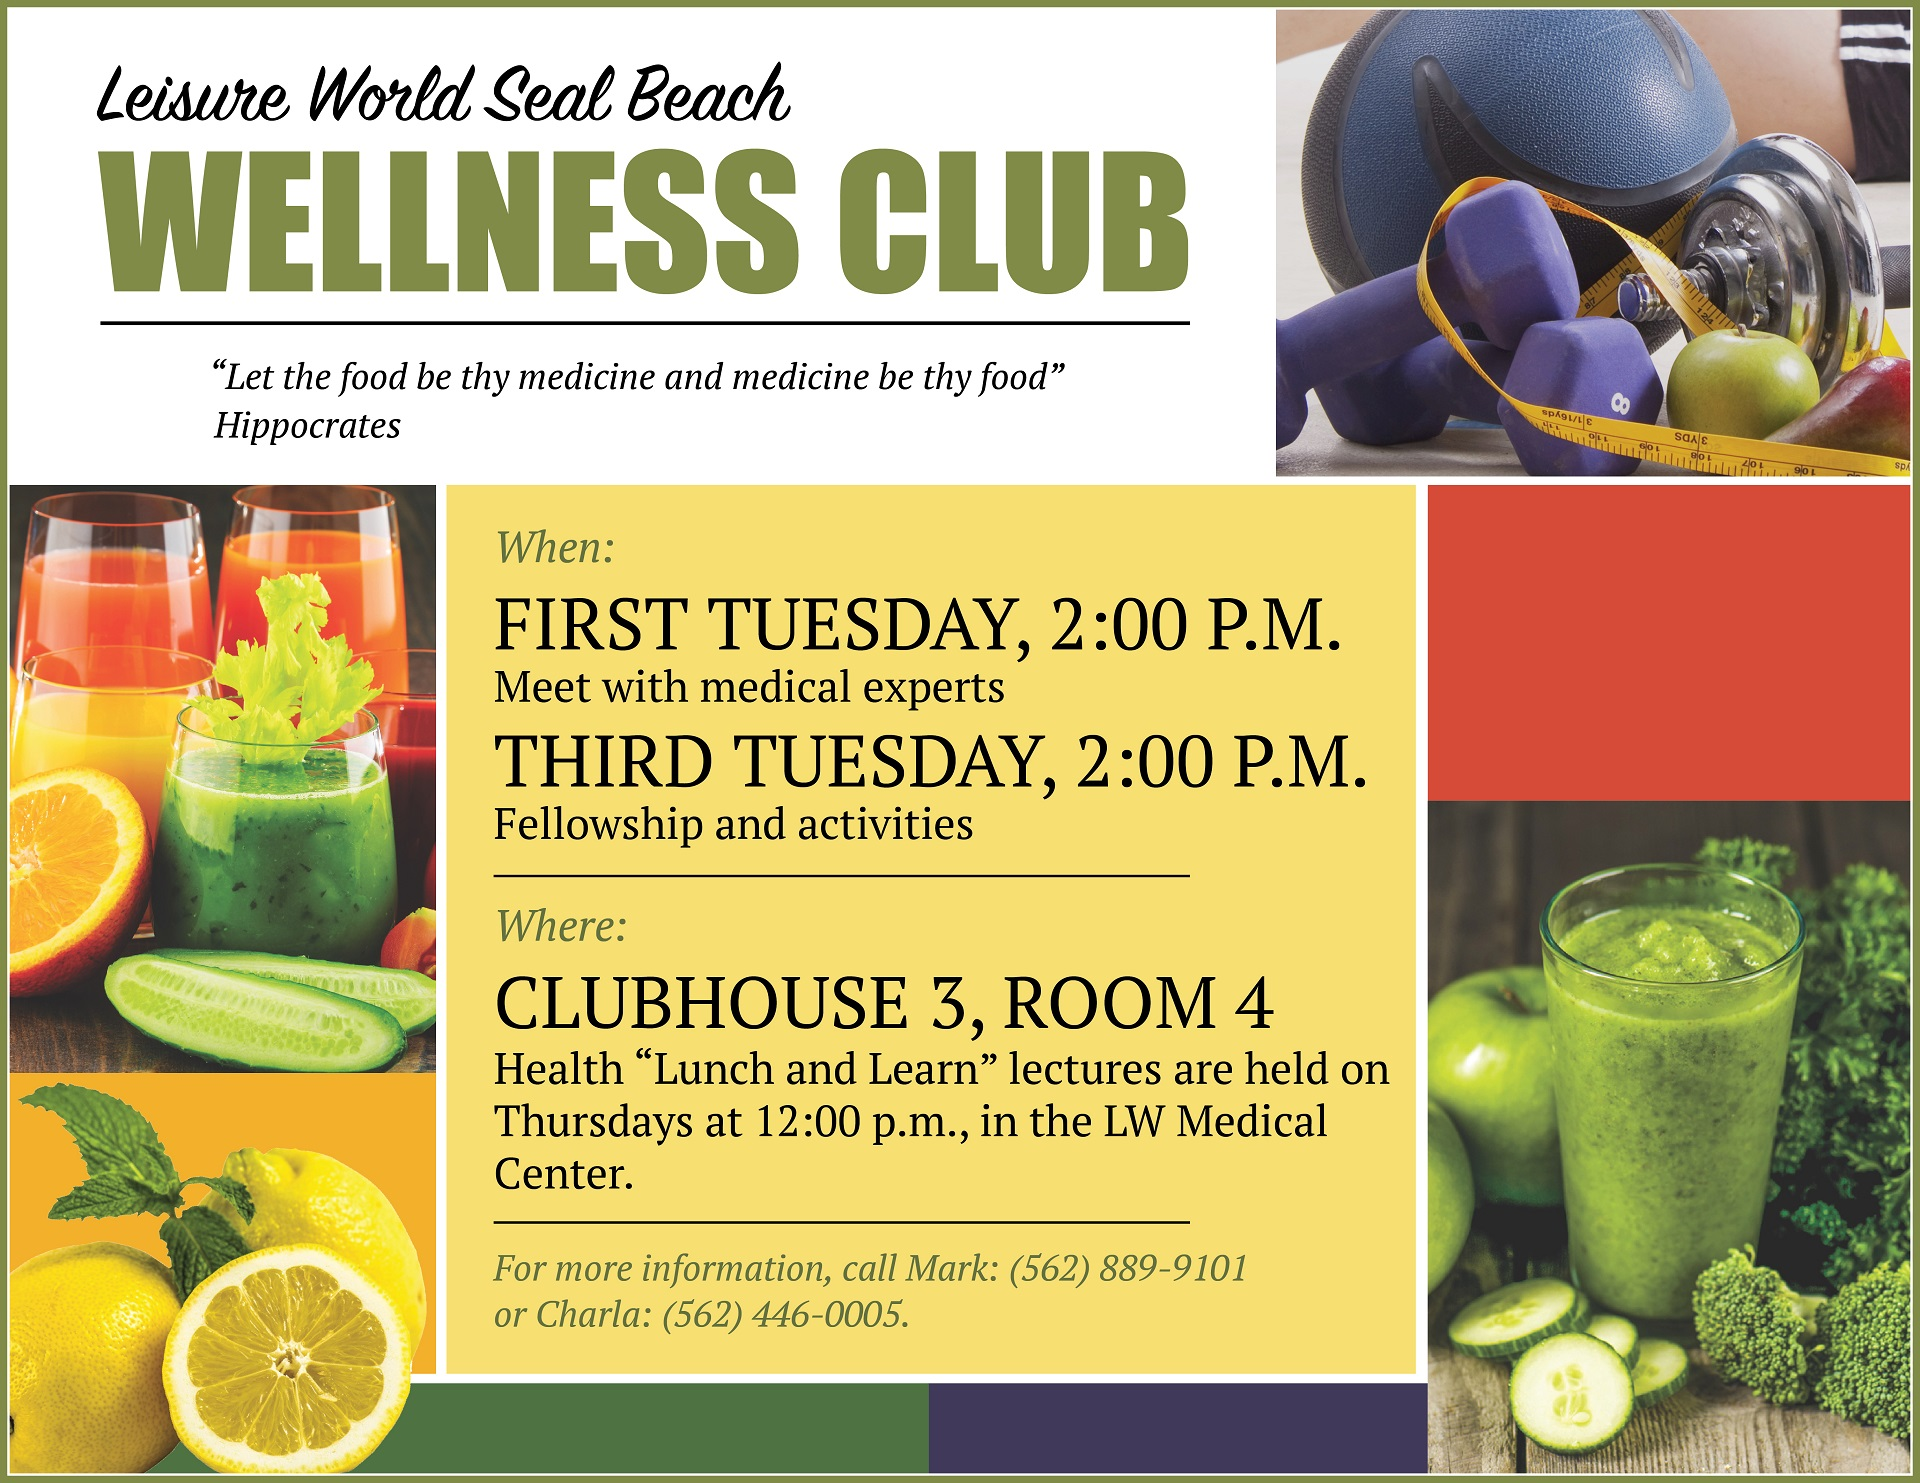 Wellness club flyer